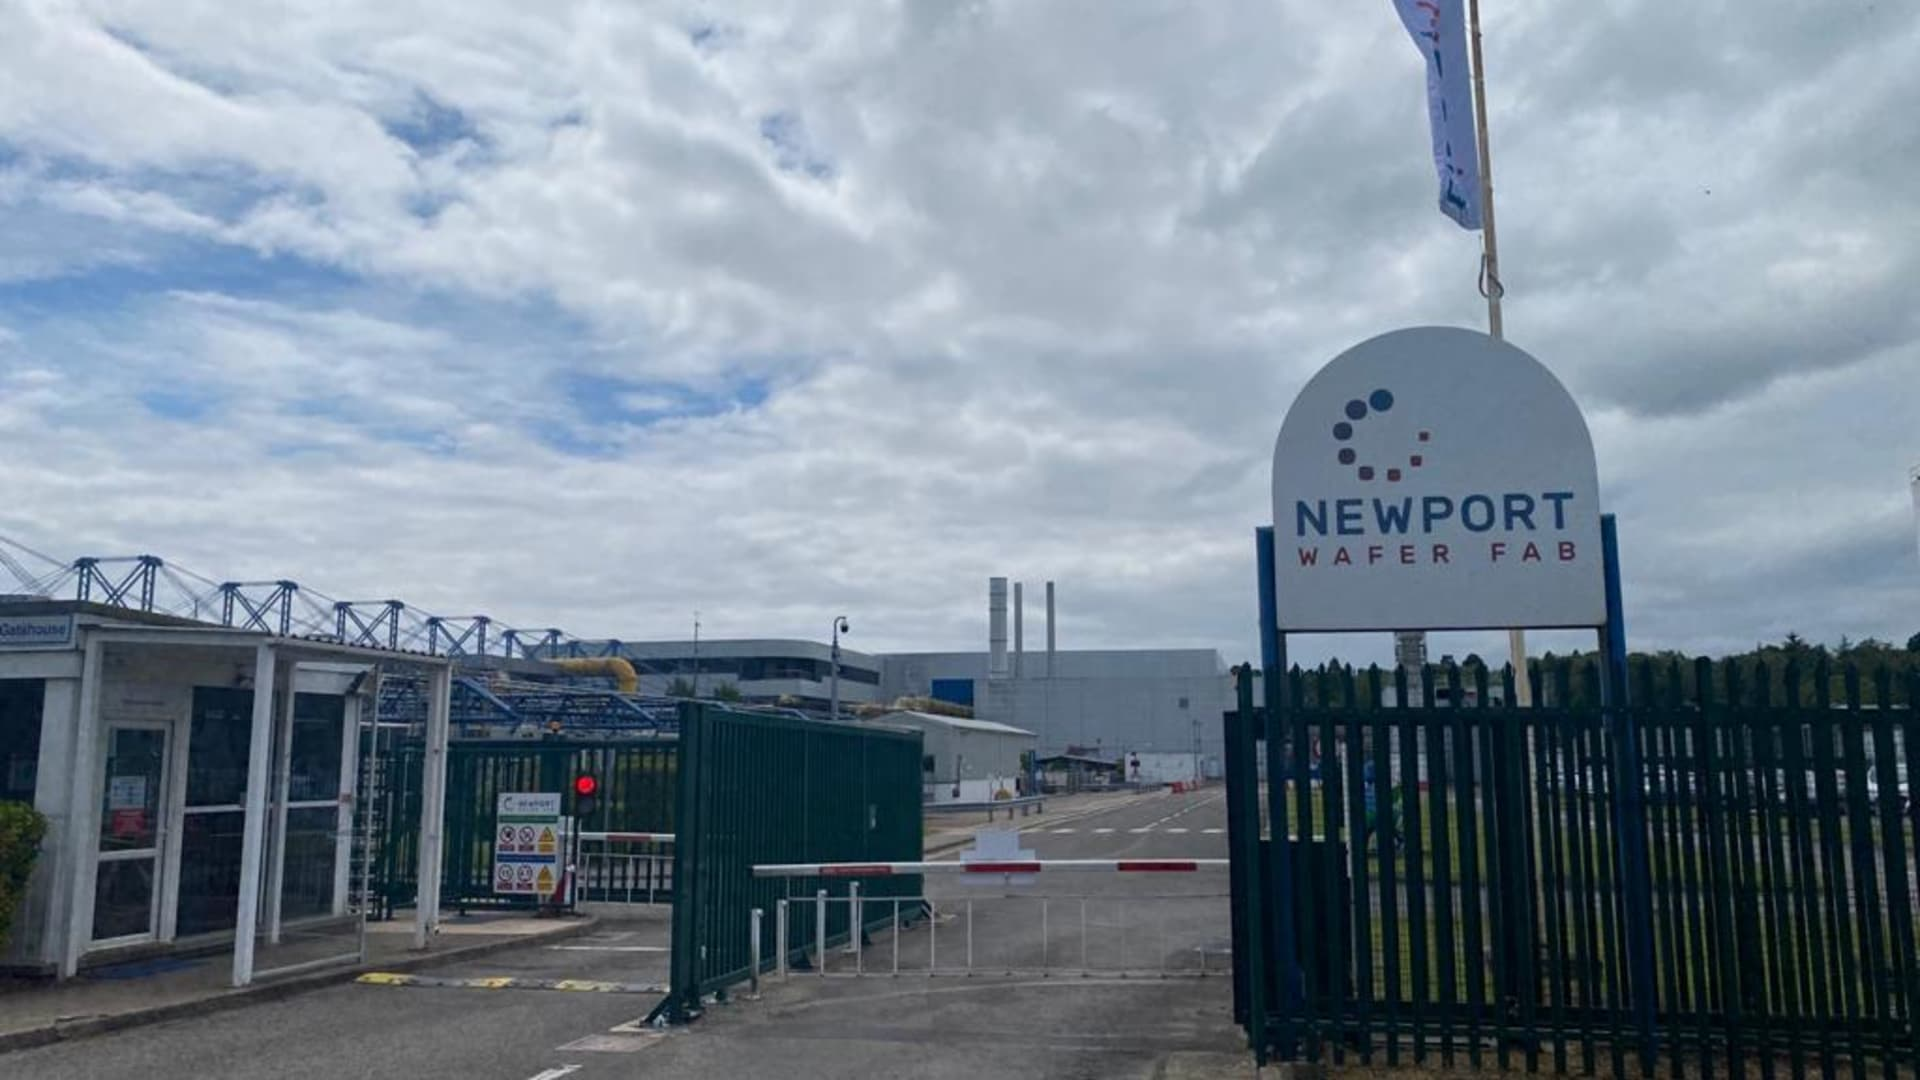 The entrance to Newport Wafer Fab's manufacturing facility in Newport, Wales.